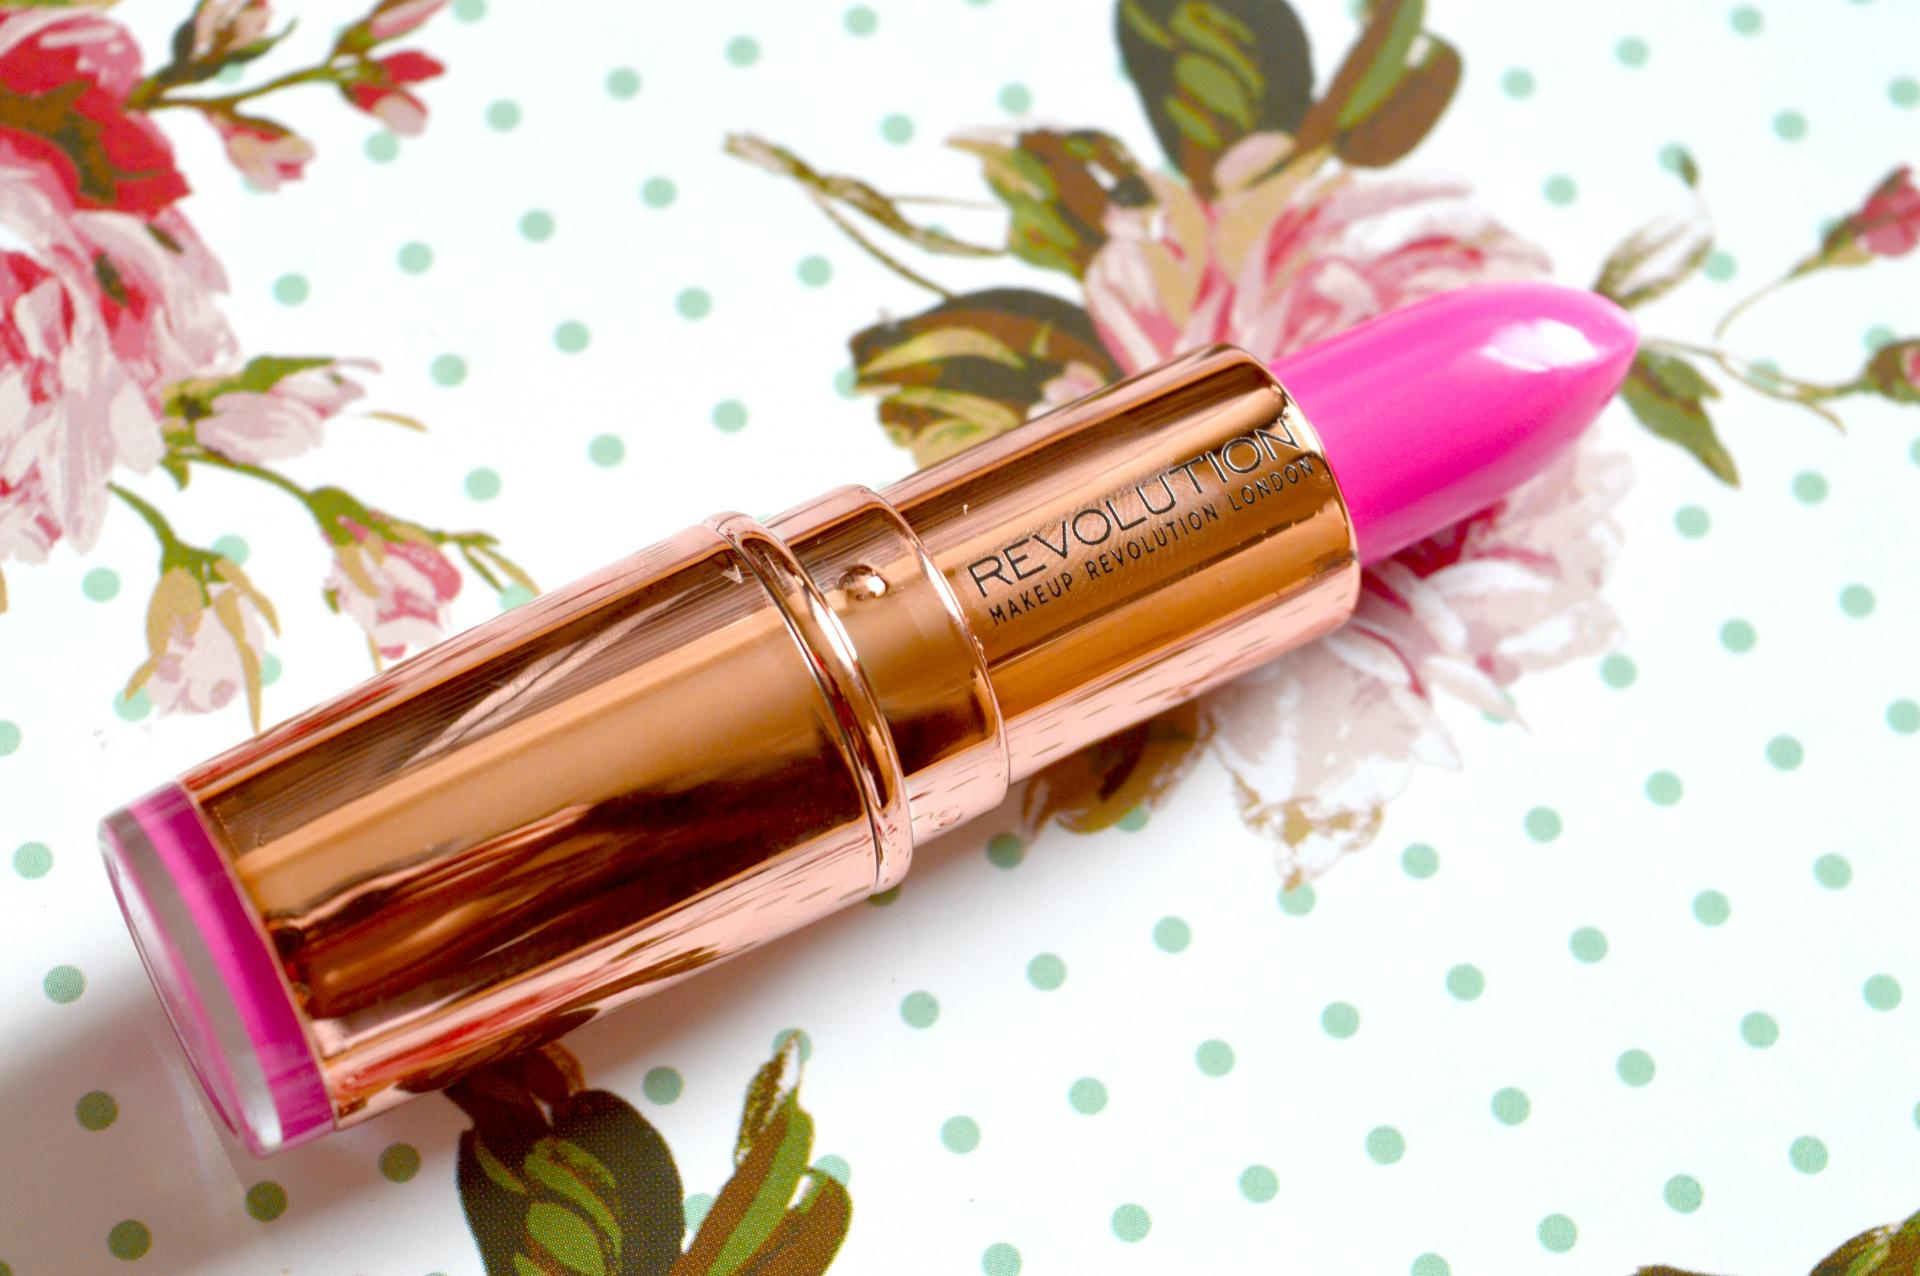 Makeup Revolution Rose Gold Lipstick in Girls Best Friend